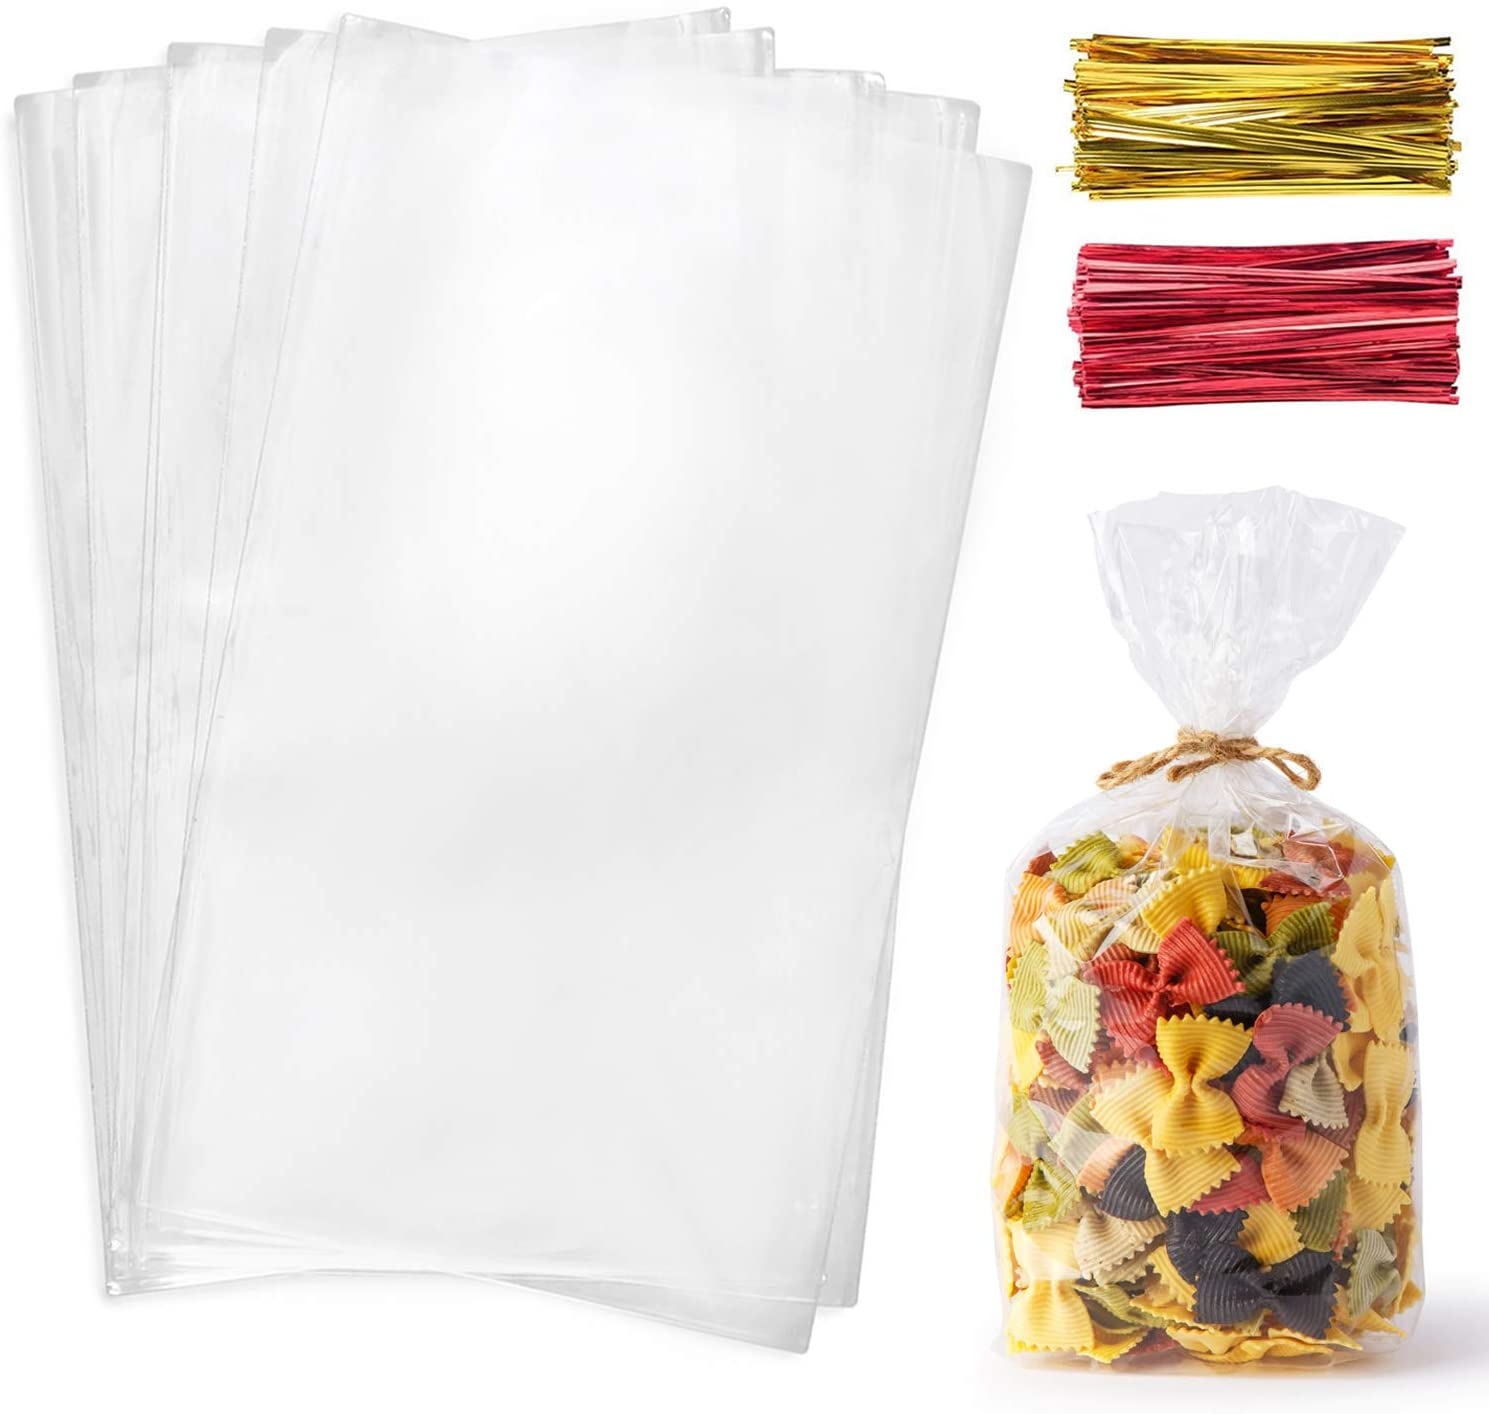 Cello Cellophane Treat Bags,200 PCS 7x13 Inches Clear Pastic Gift Bags with Twist Ties,Party Favor Bags : Health & Household